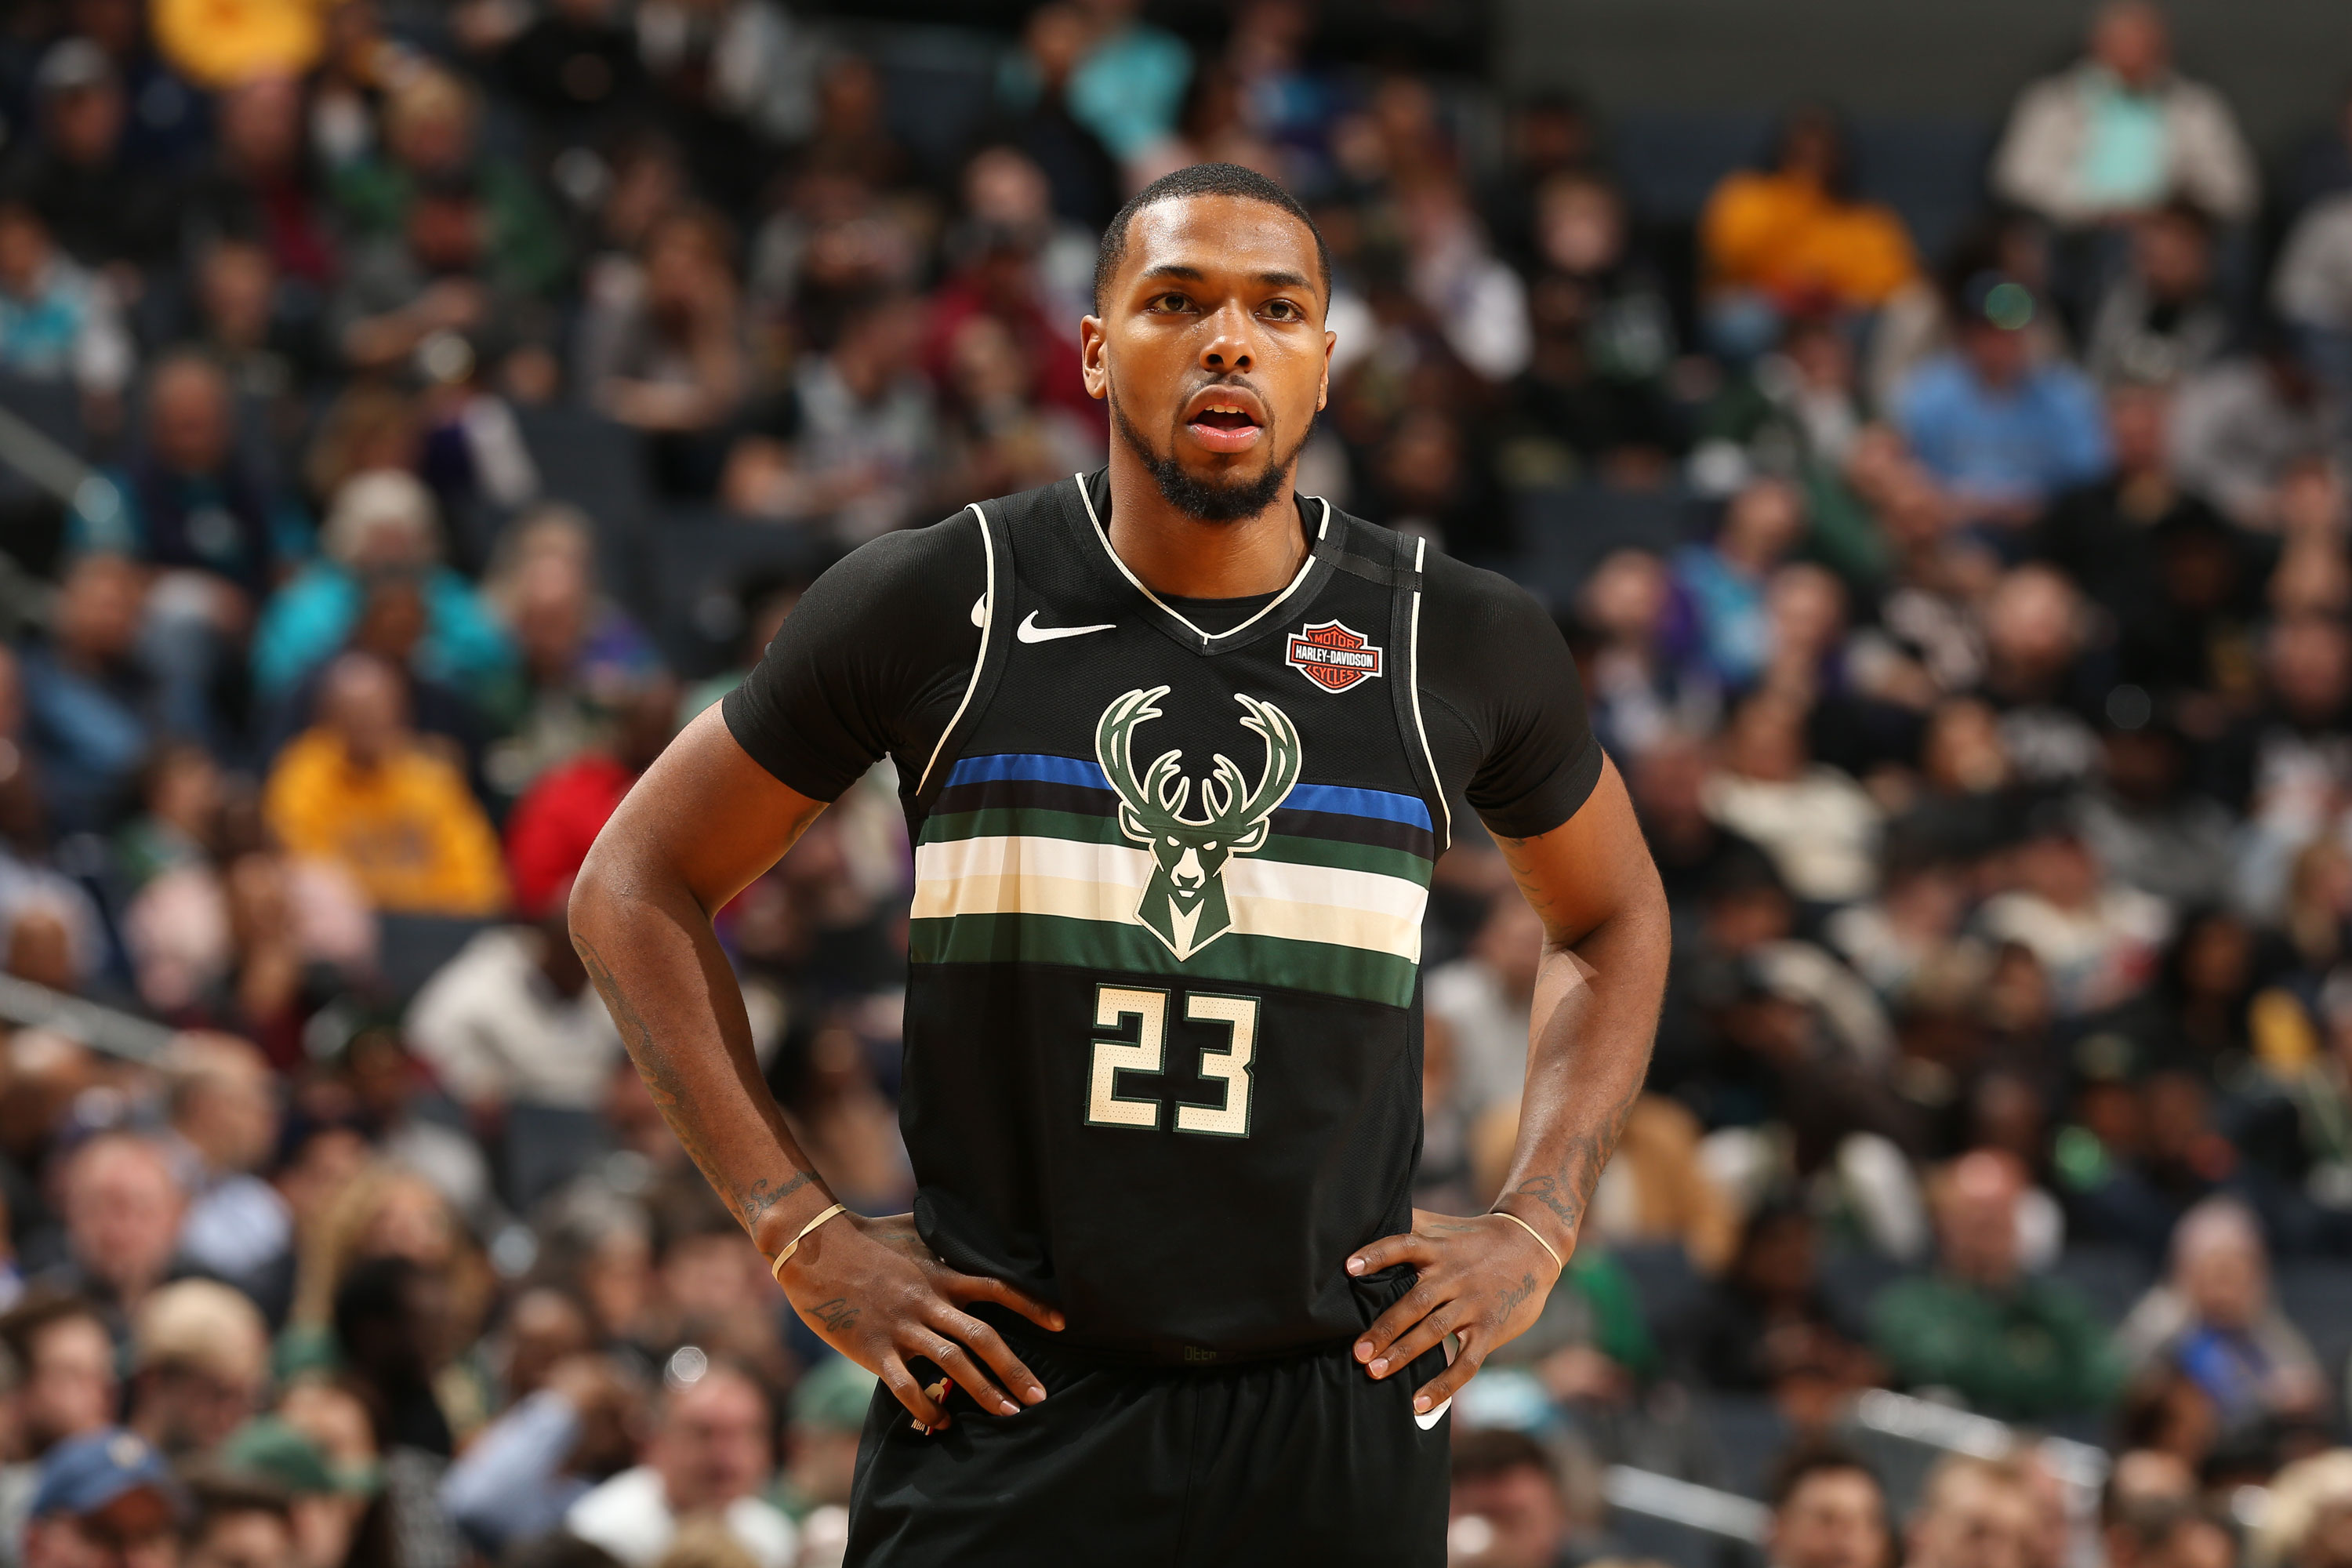 NBA player Sterling Brown's $750,000 settlement approved after 2018 incident where he was tased by police